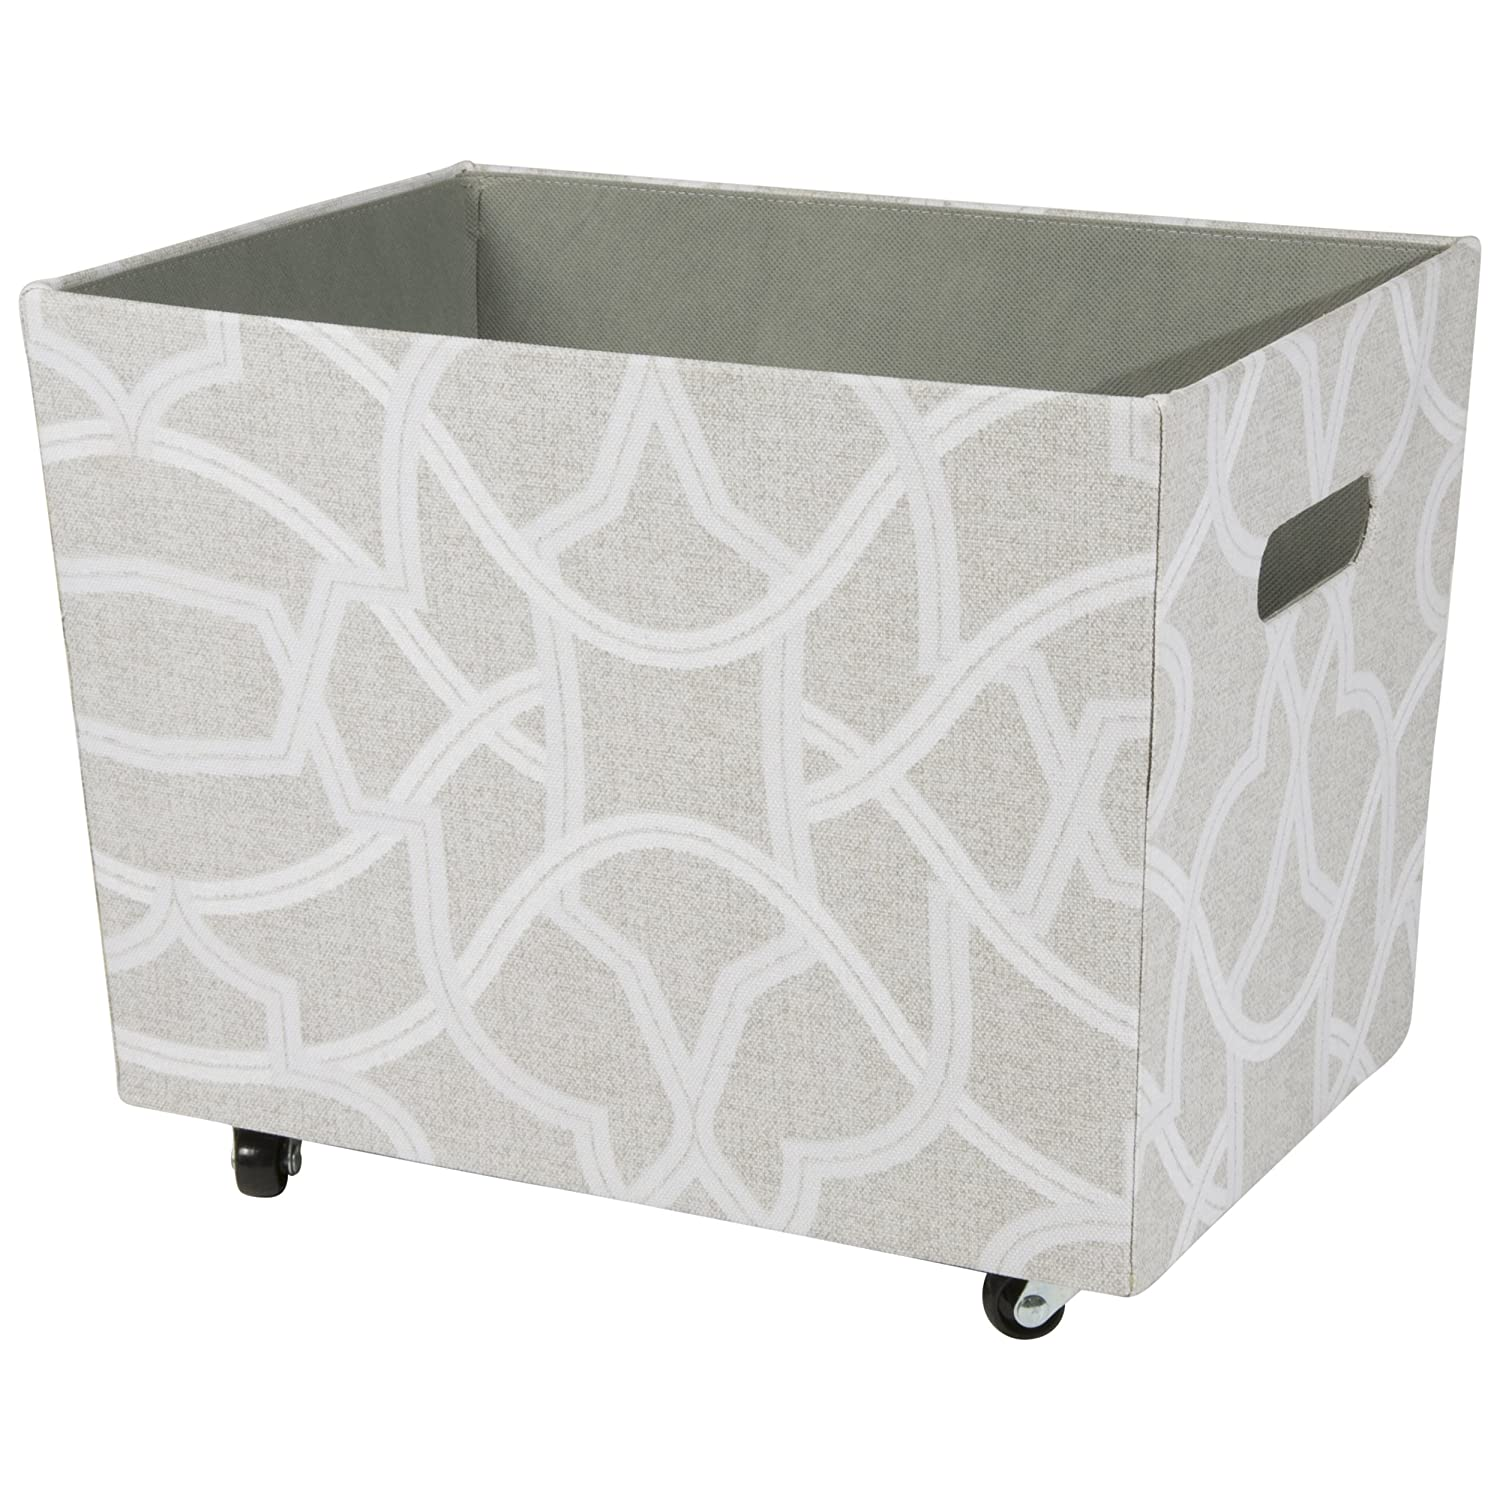 Excellent Amazon Com Raymond Waites Printed Canvas Storage Bin On3 Caraccident5 Cool Chair Designs And Ideas Caraccident5Info